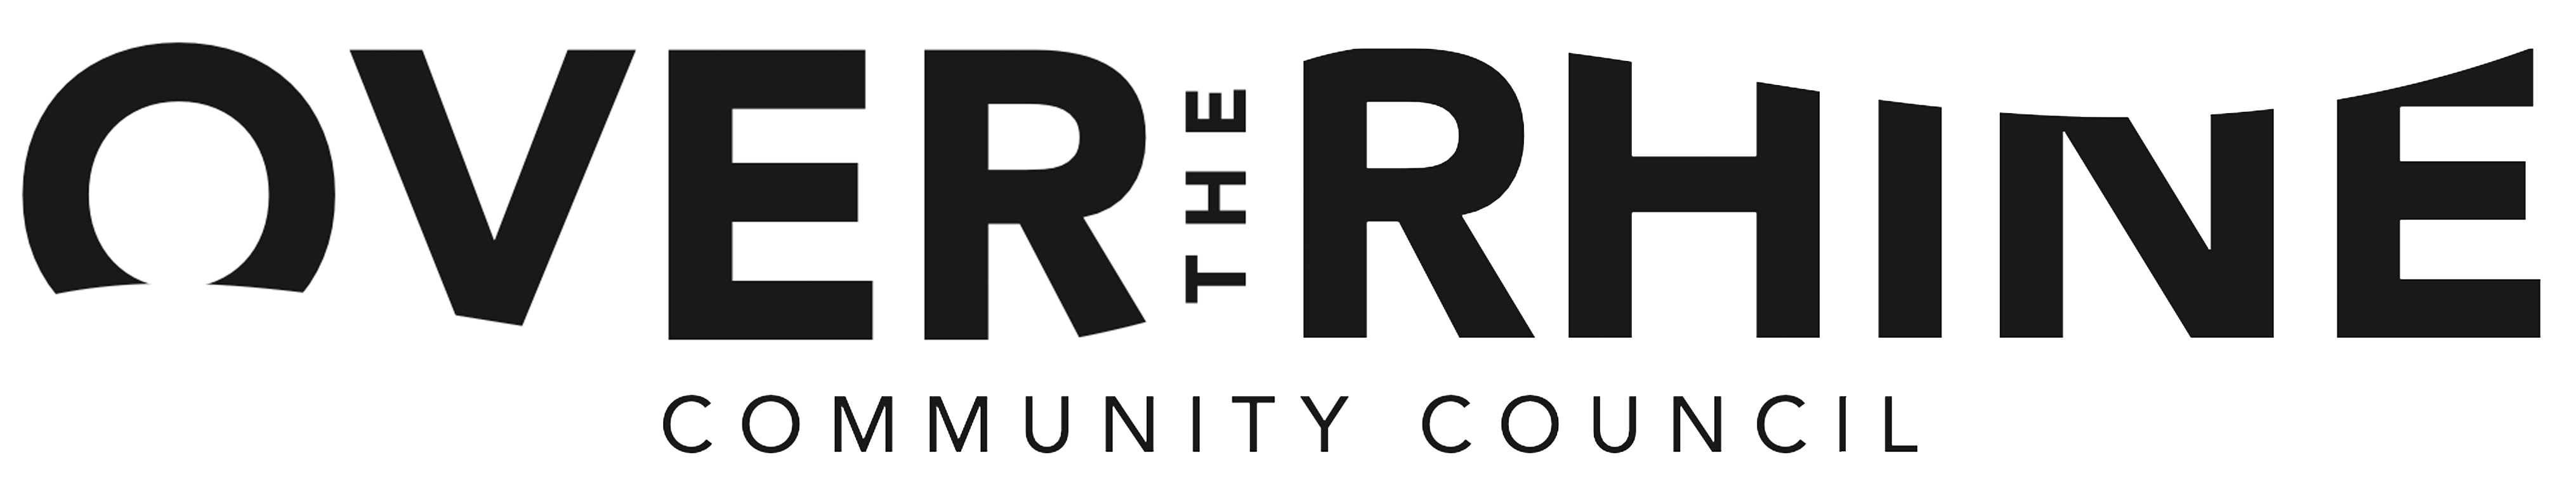 Over-the-Rhine Community Council